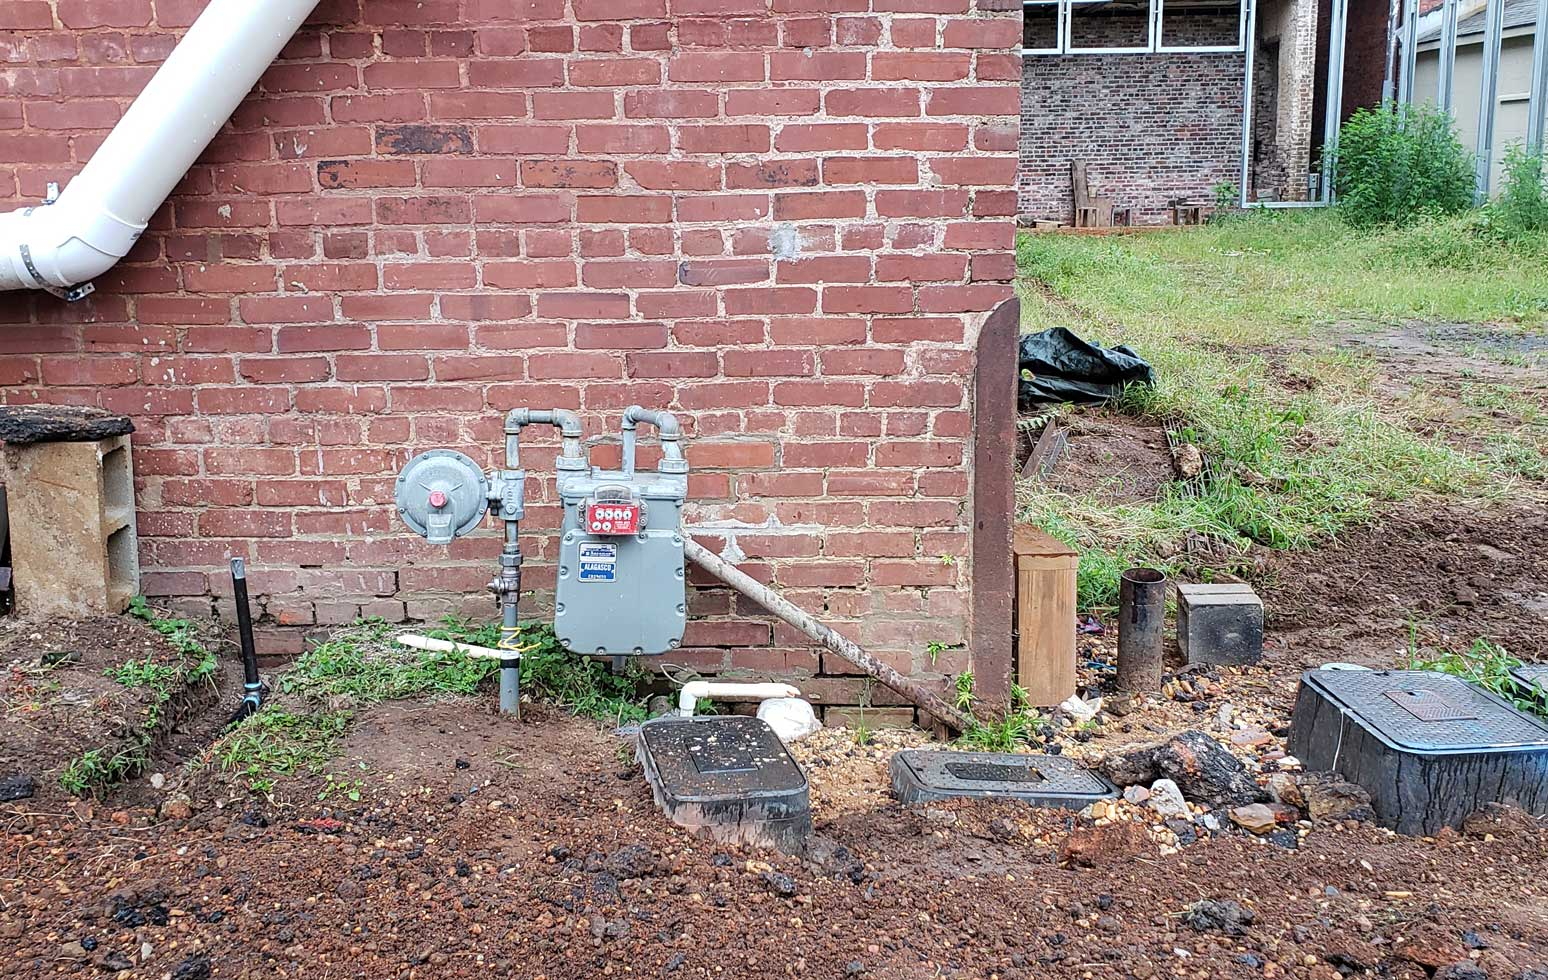 gas meter agast brick wall